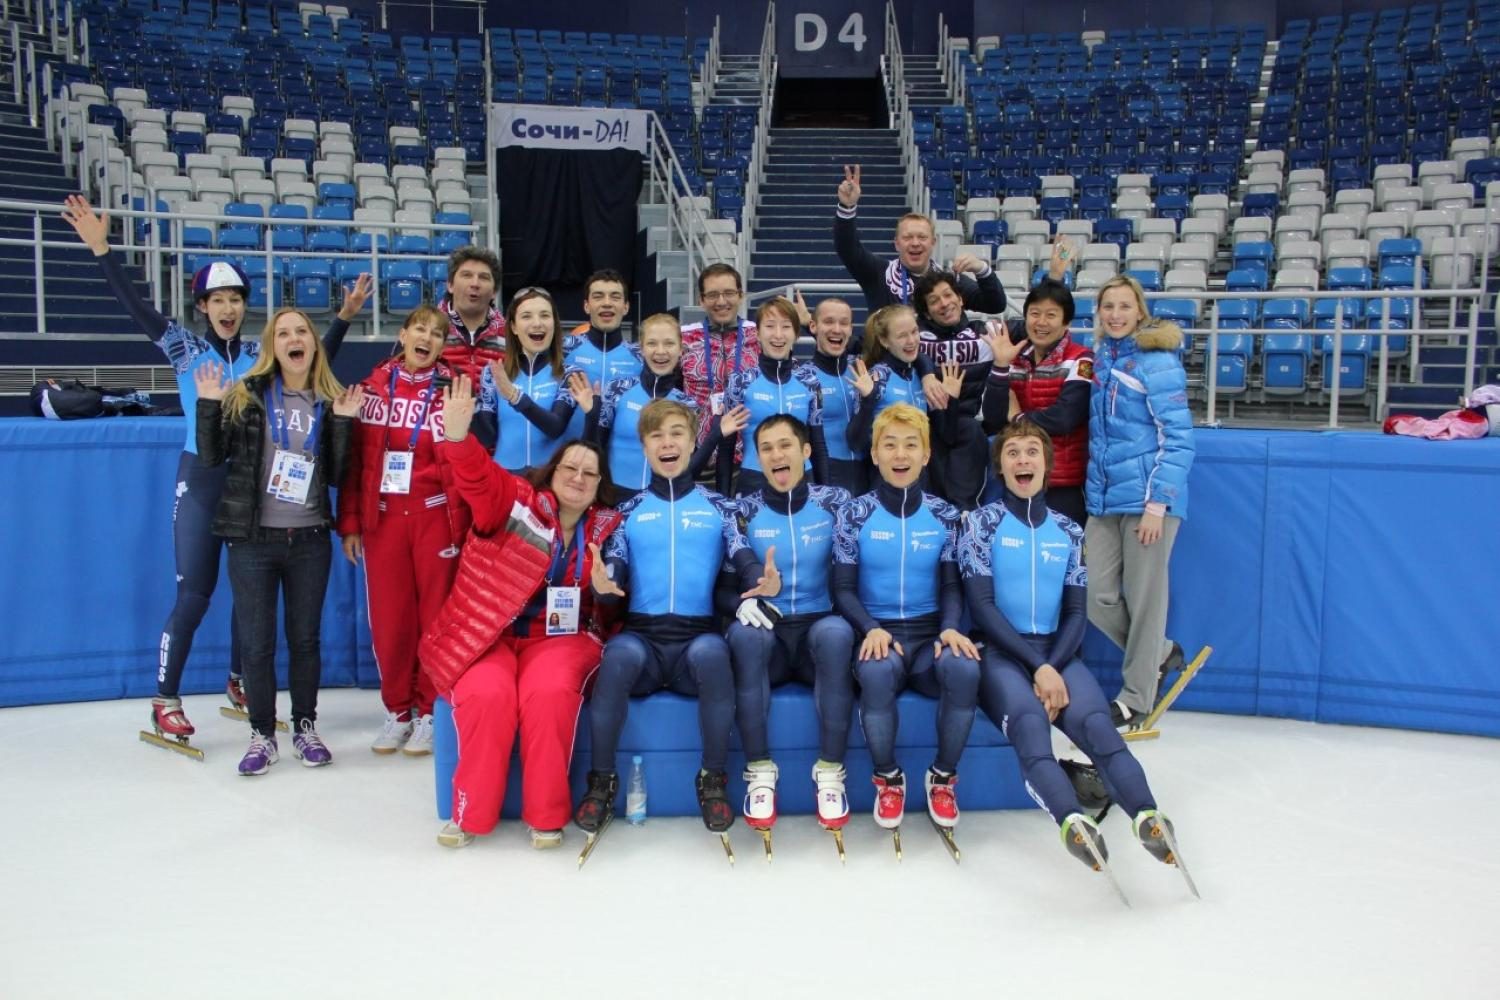 Before covering the games for the Olympic Channel, Journalism Instructor Marina Dmukhovskaya previously served as the Russian Skating Union's media manager.